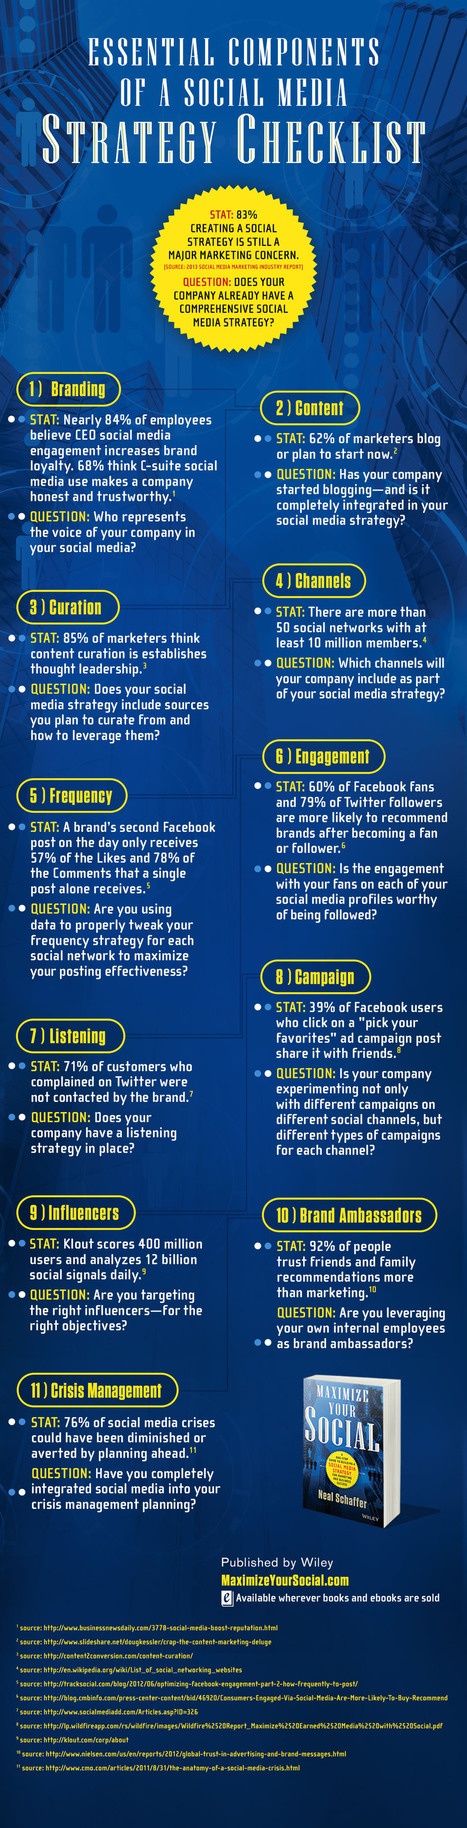 11 Ingredients for a Complete Social Media Strategy Plan (INFOGRAPHIC)   Social Media & Digital Marketing   Scoop.it